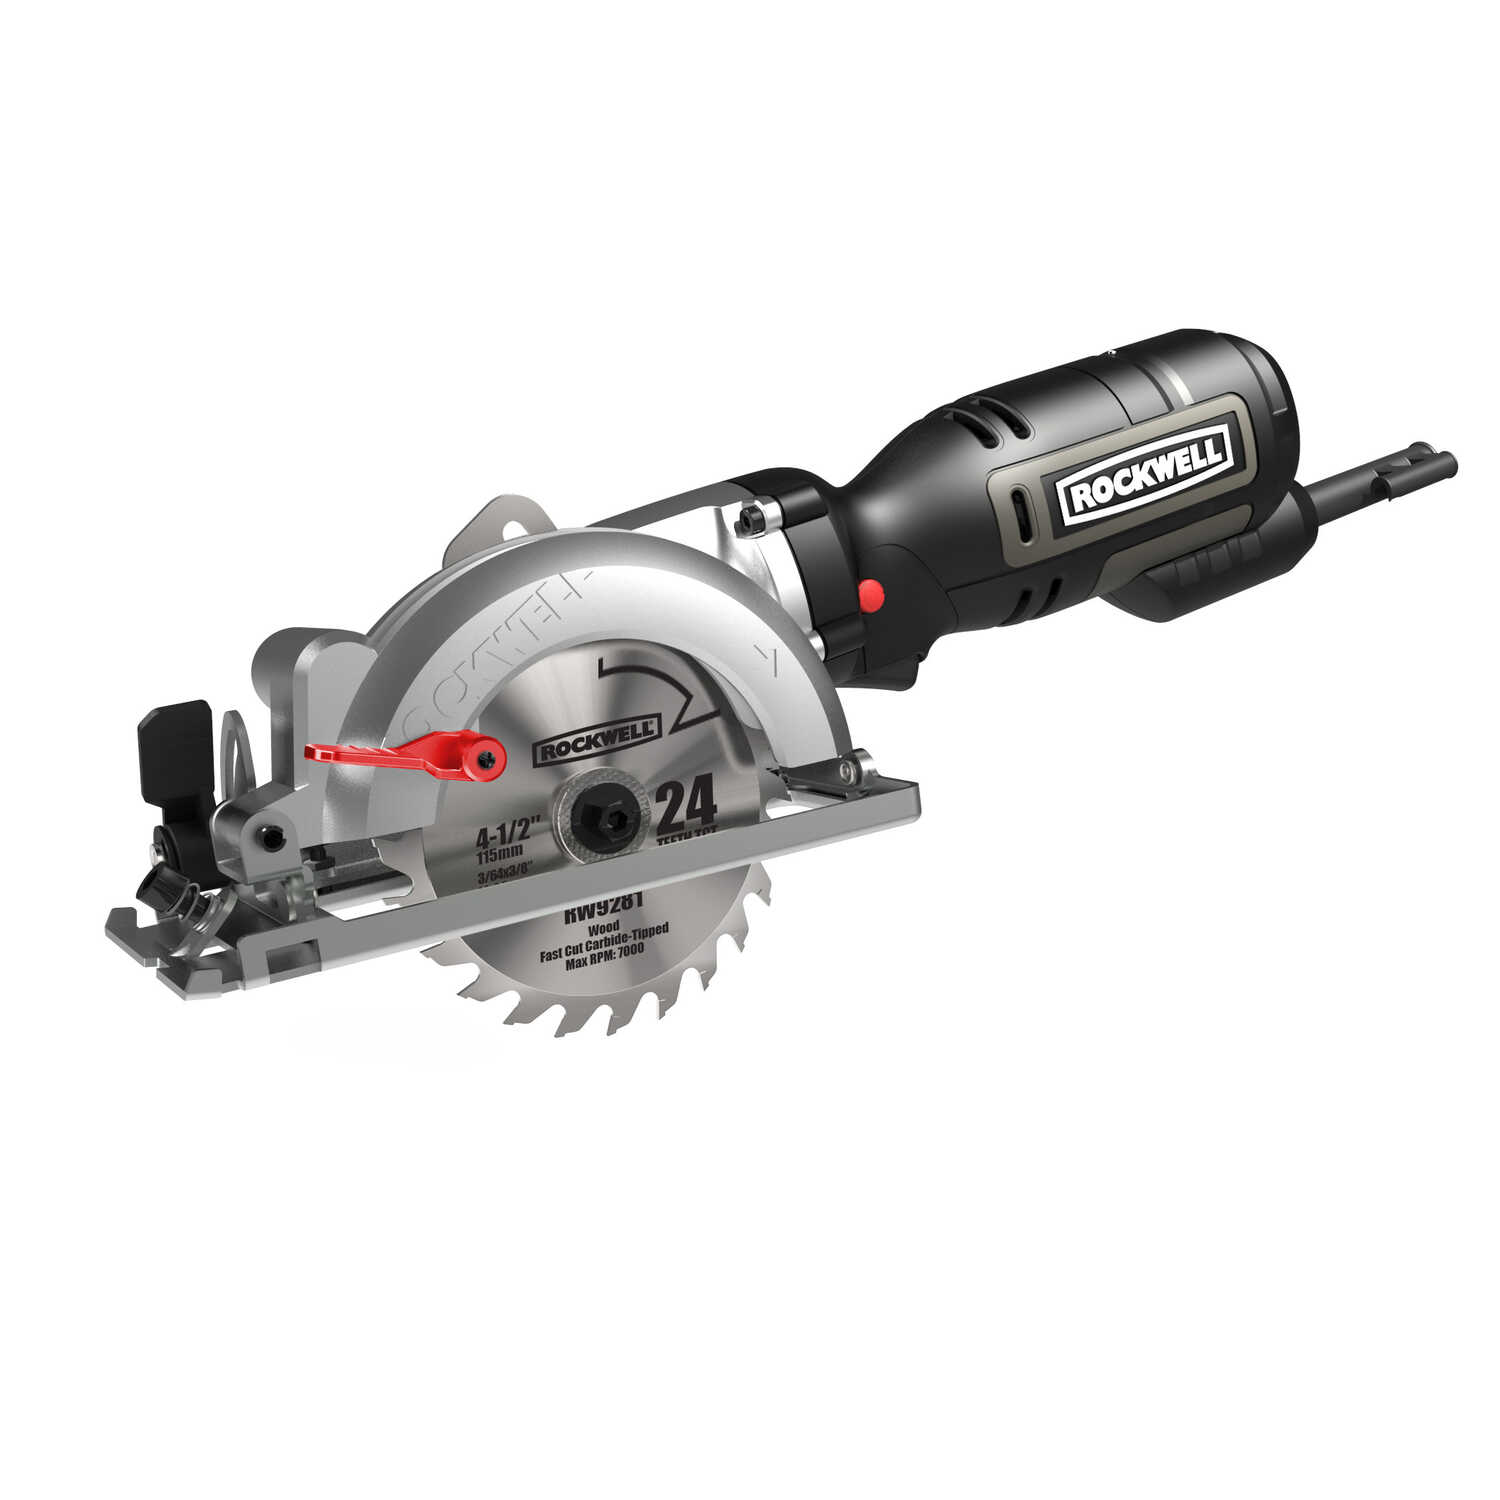 Rockwell  4-1/2 in. 5 amps Corded  Compact Circular Saw  3500 rpm